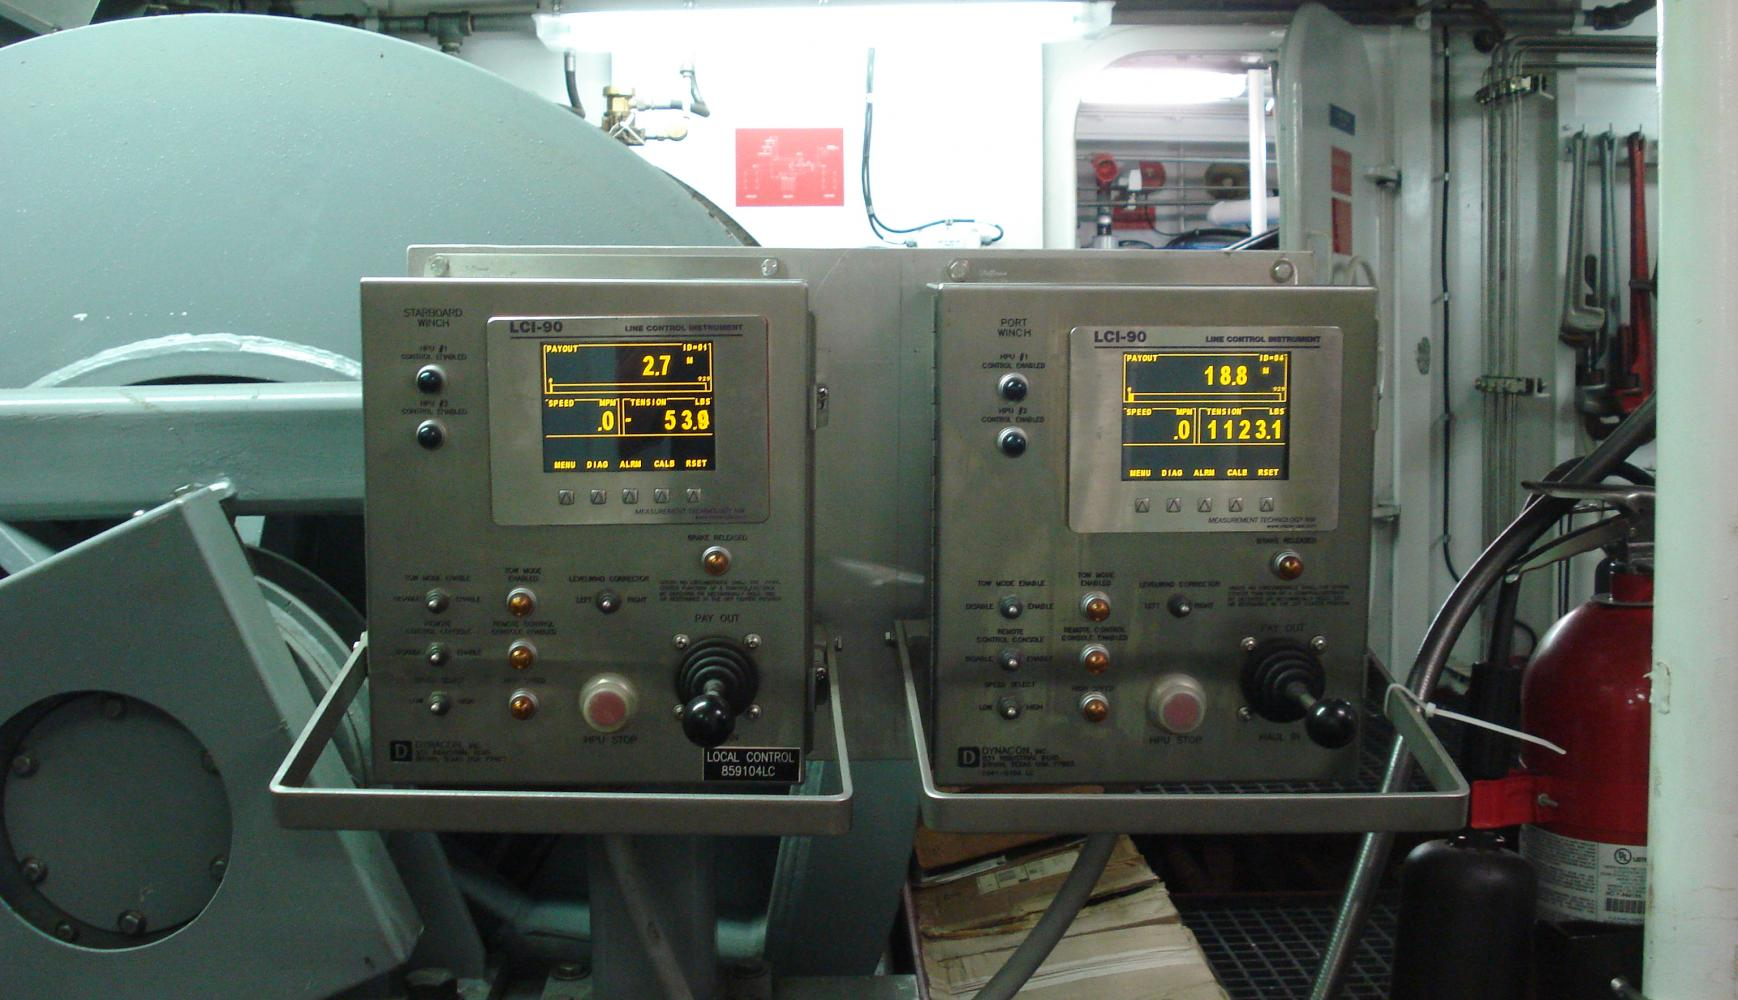 Port & Stbd Trawl Local LCI-90i Displays